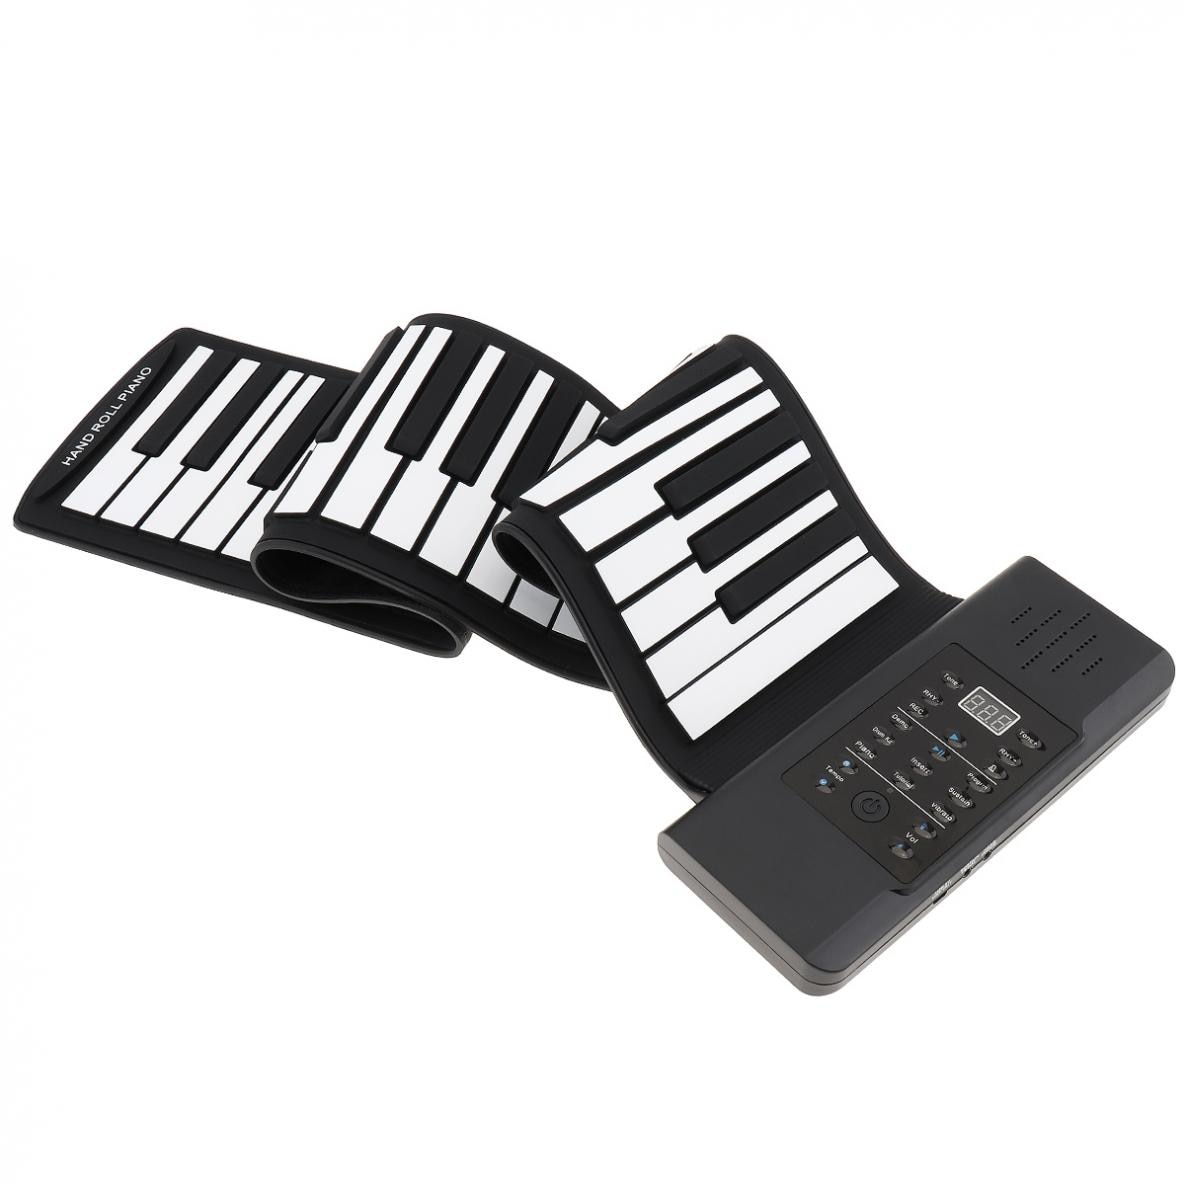 61 Keys MIDI Roll Up Piano Electronic Rechargeable Portable Silicone Flexible Keyboard Organ Built-in Speaker with Accessories enlarge